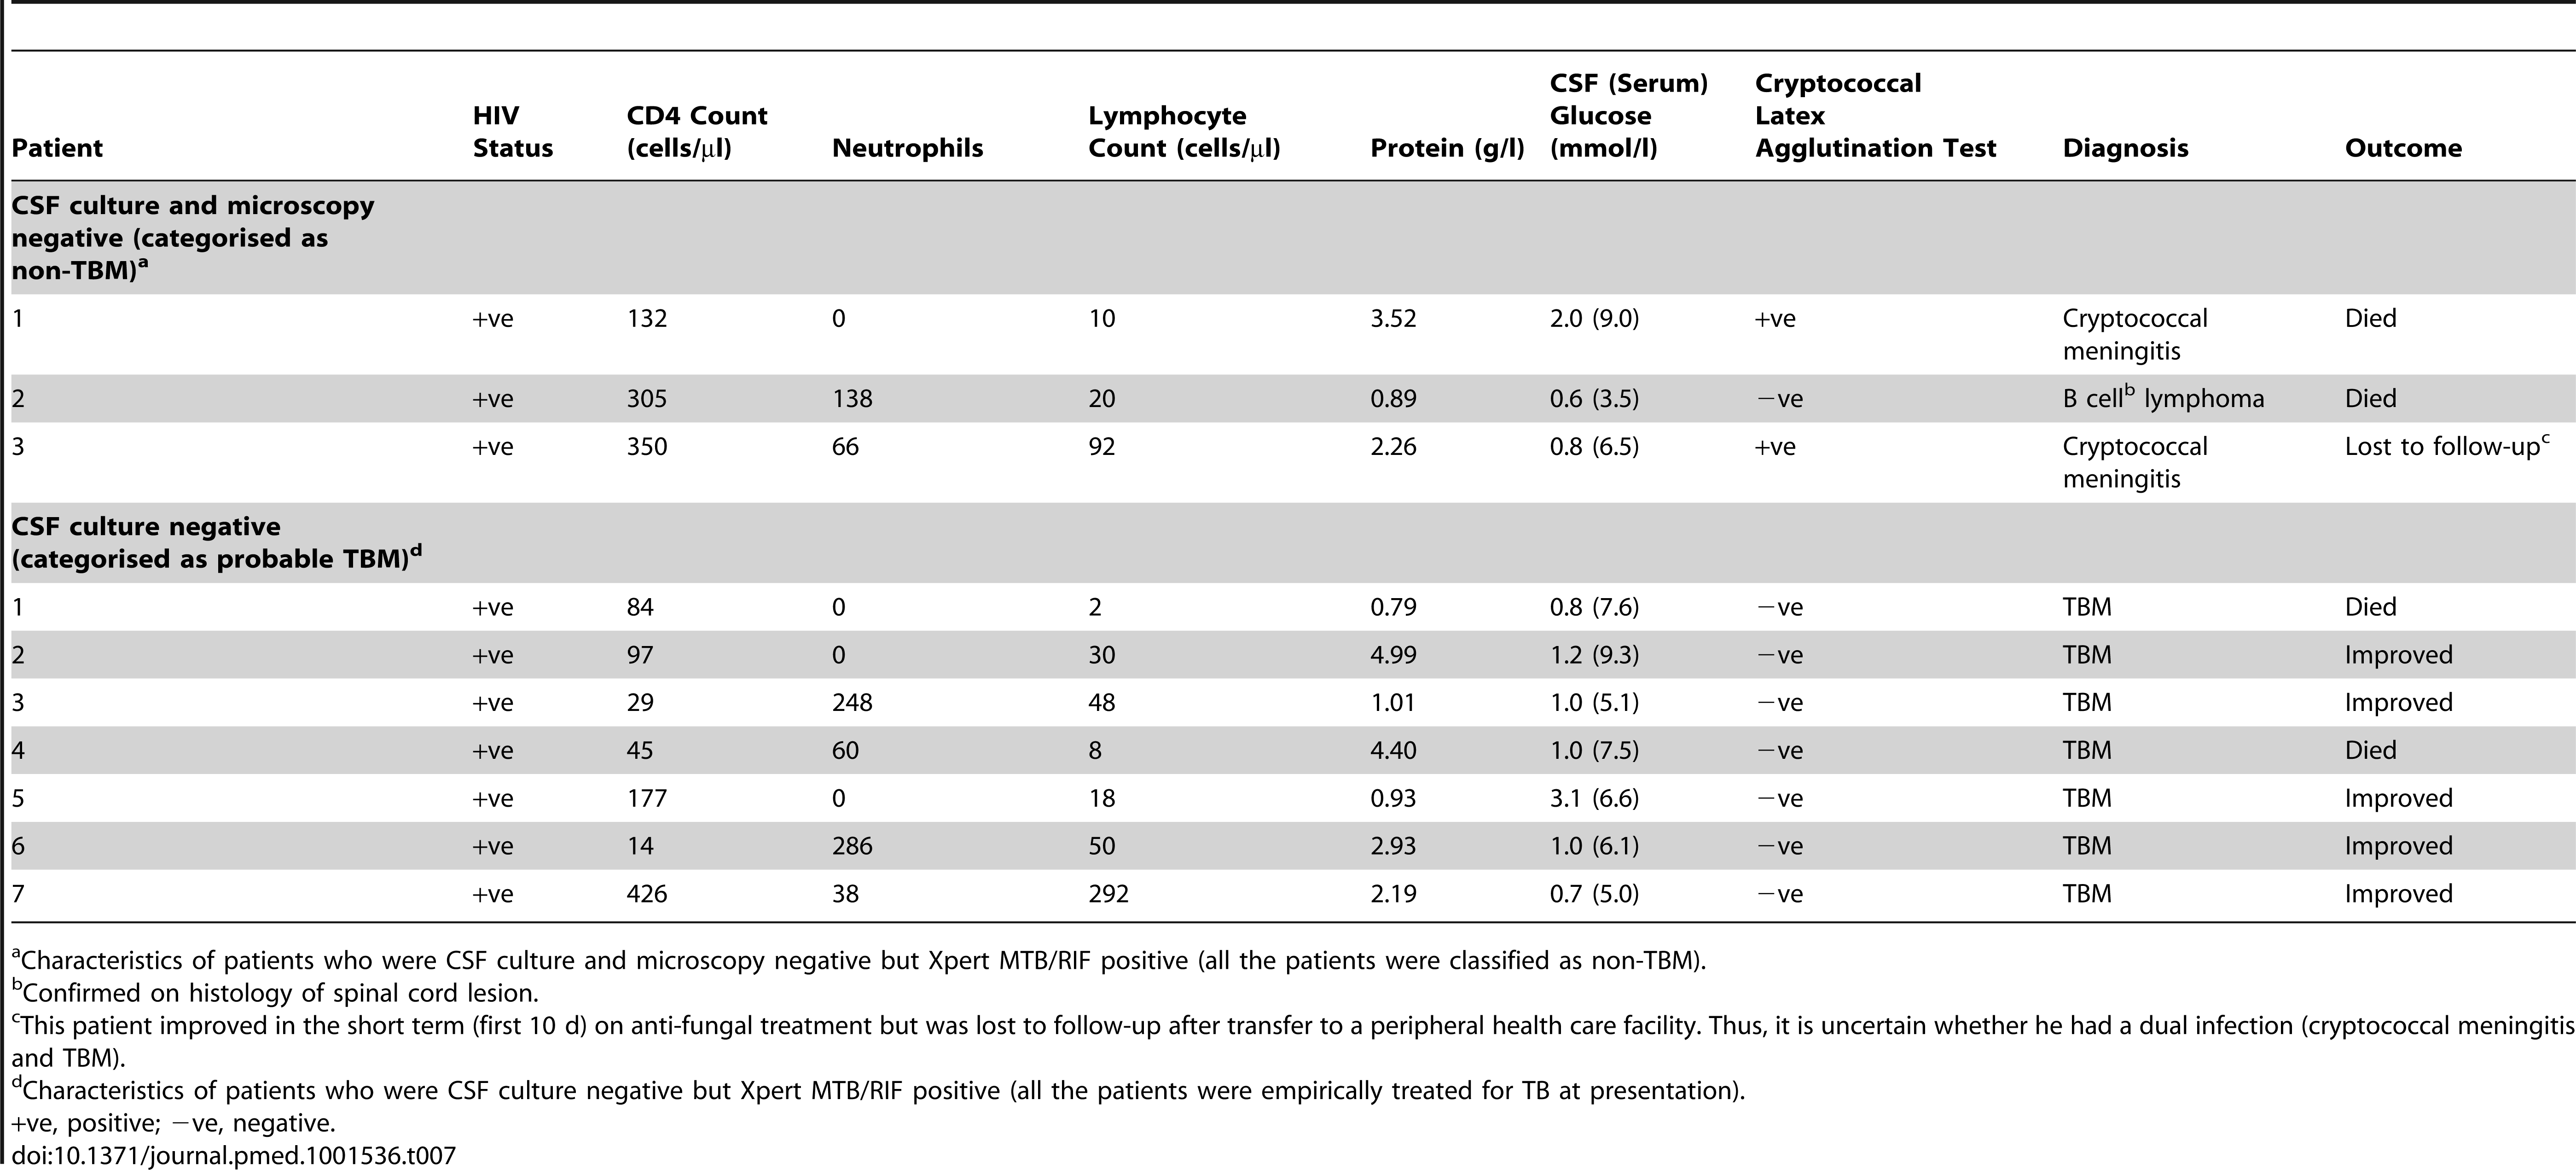 Characteristics of patients classified as non-TBM and probable TBM who were Xpert MTB/RIF positive.